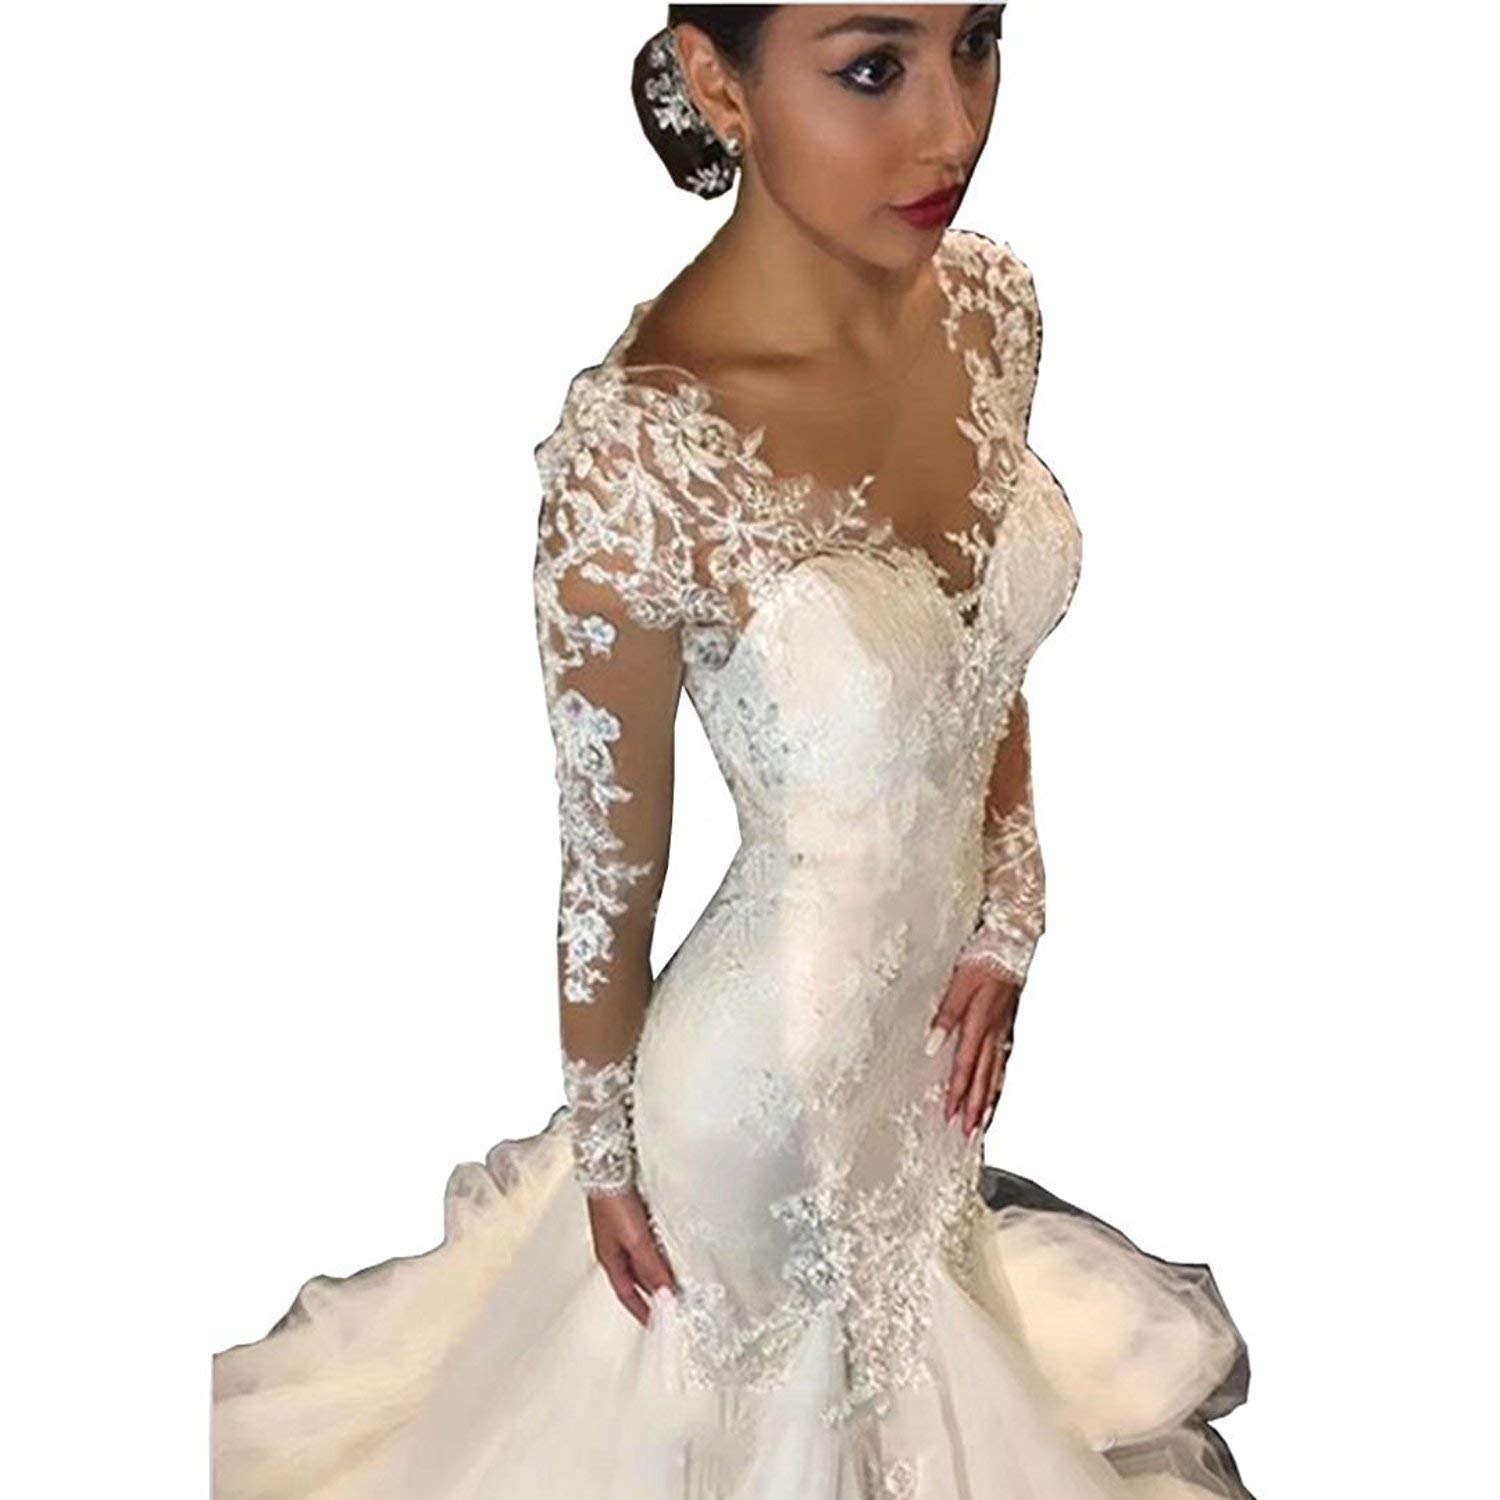 550c449829fac Get Quotations · Yilian Elegant Lace Mermaid Wedding Dresses for Bride 2018 Long  Sleeves Beaded Crew Neck Luxury Wedding